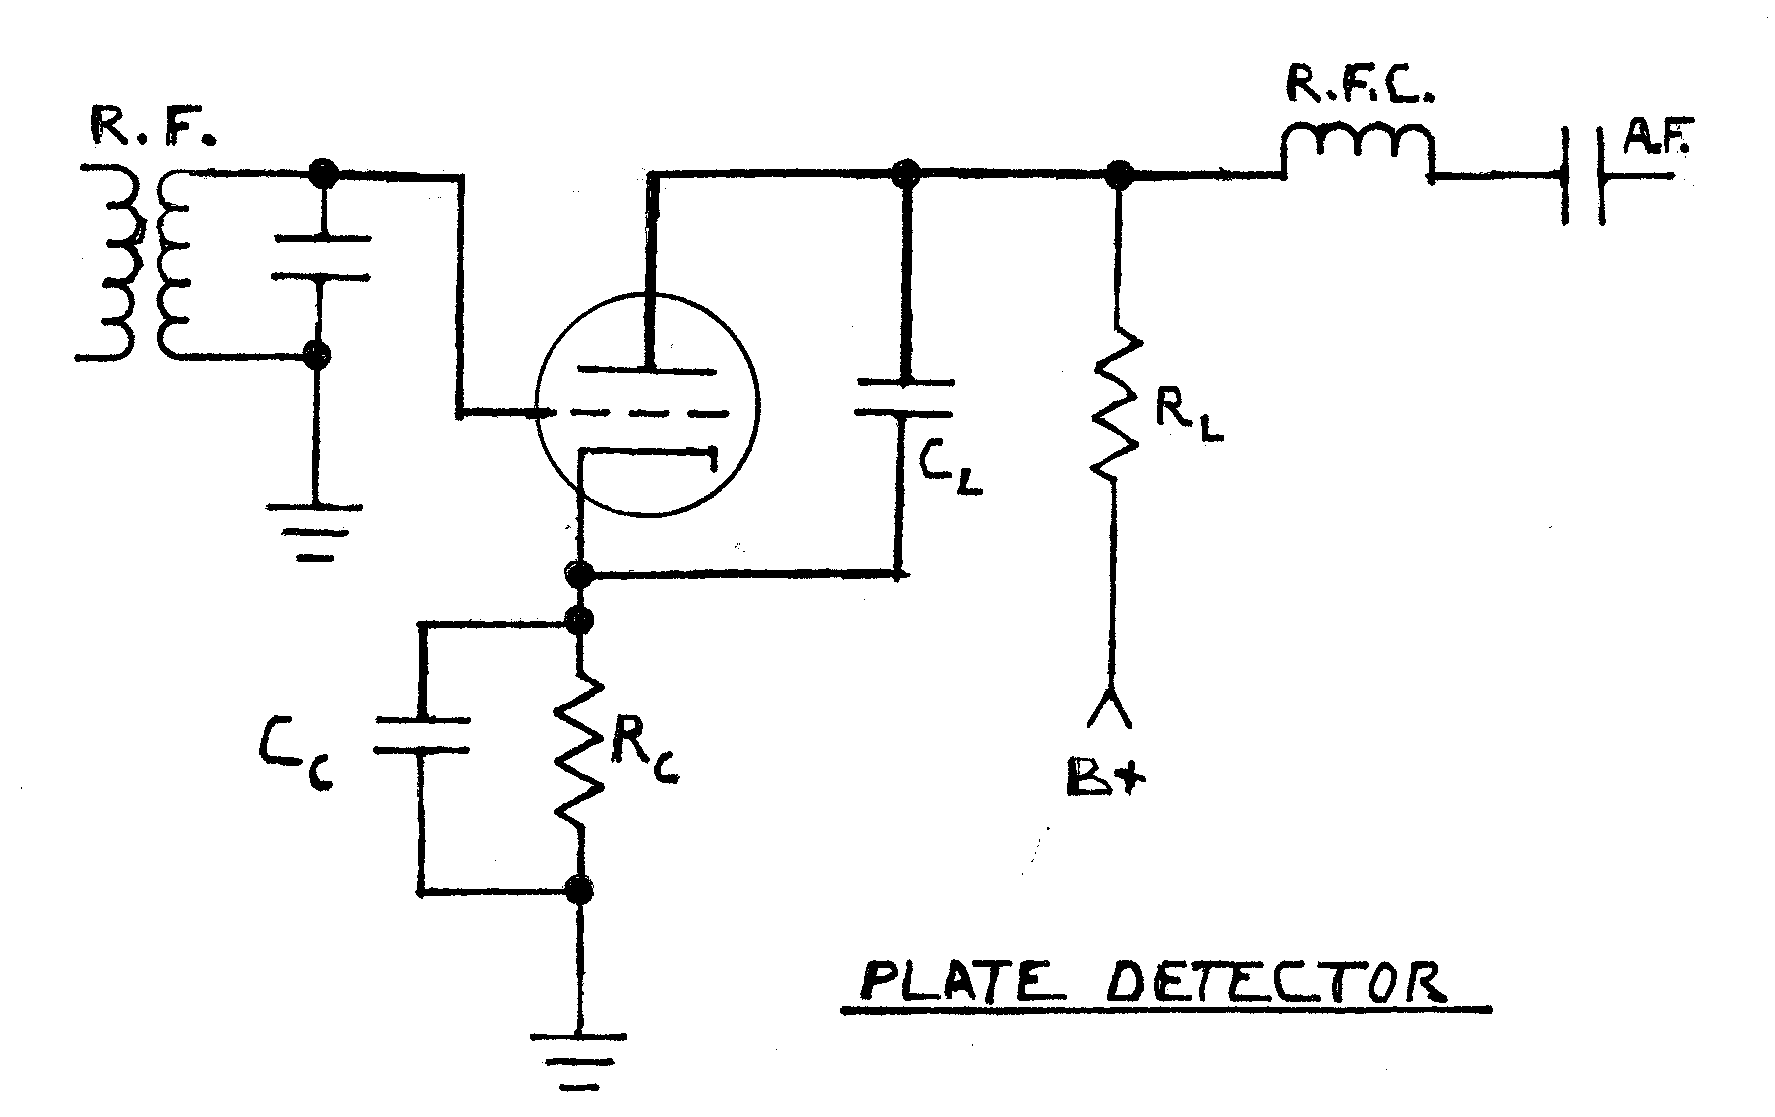 Am Radio Schematic Diagram Tube - Wiring Diagrams on